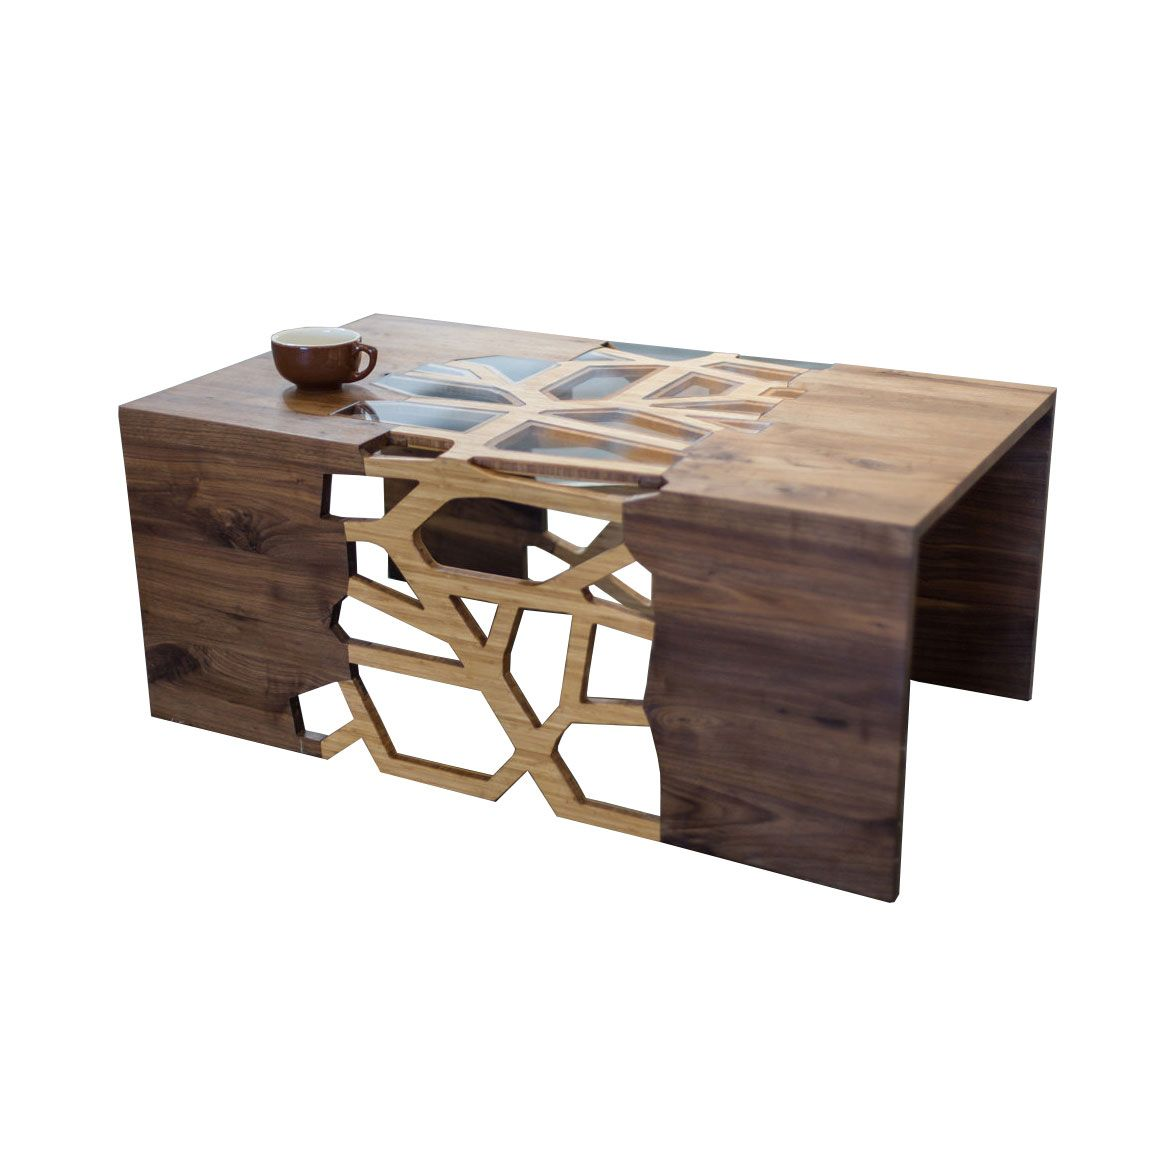 rustic modern wood furniture. gorgeous design wood coffee table tables architecture interior and interiors rustic modern furniture l